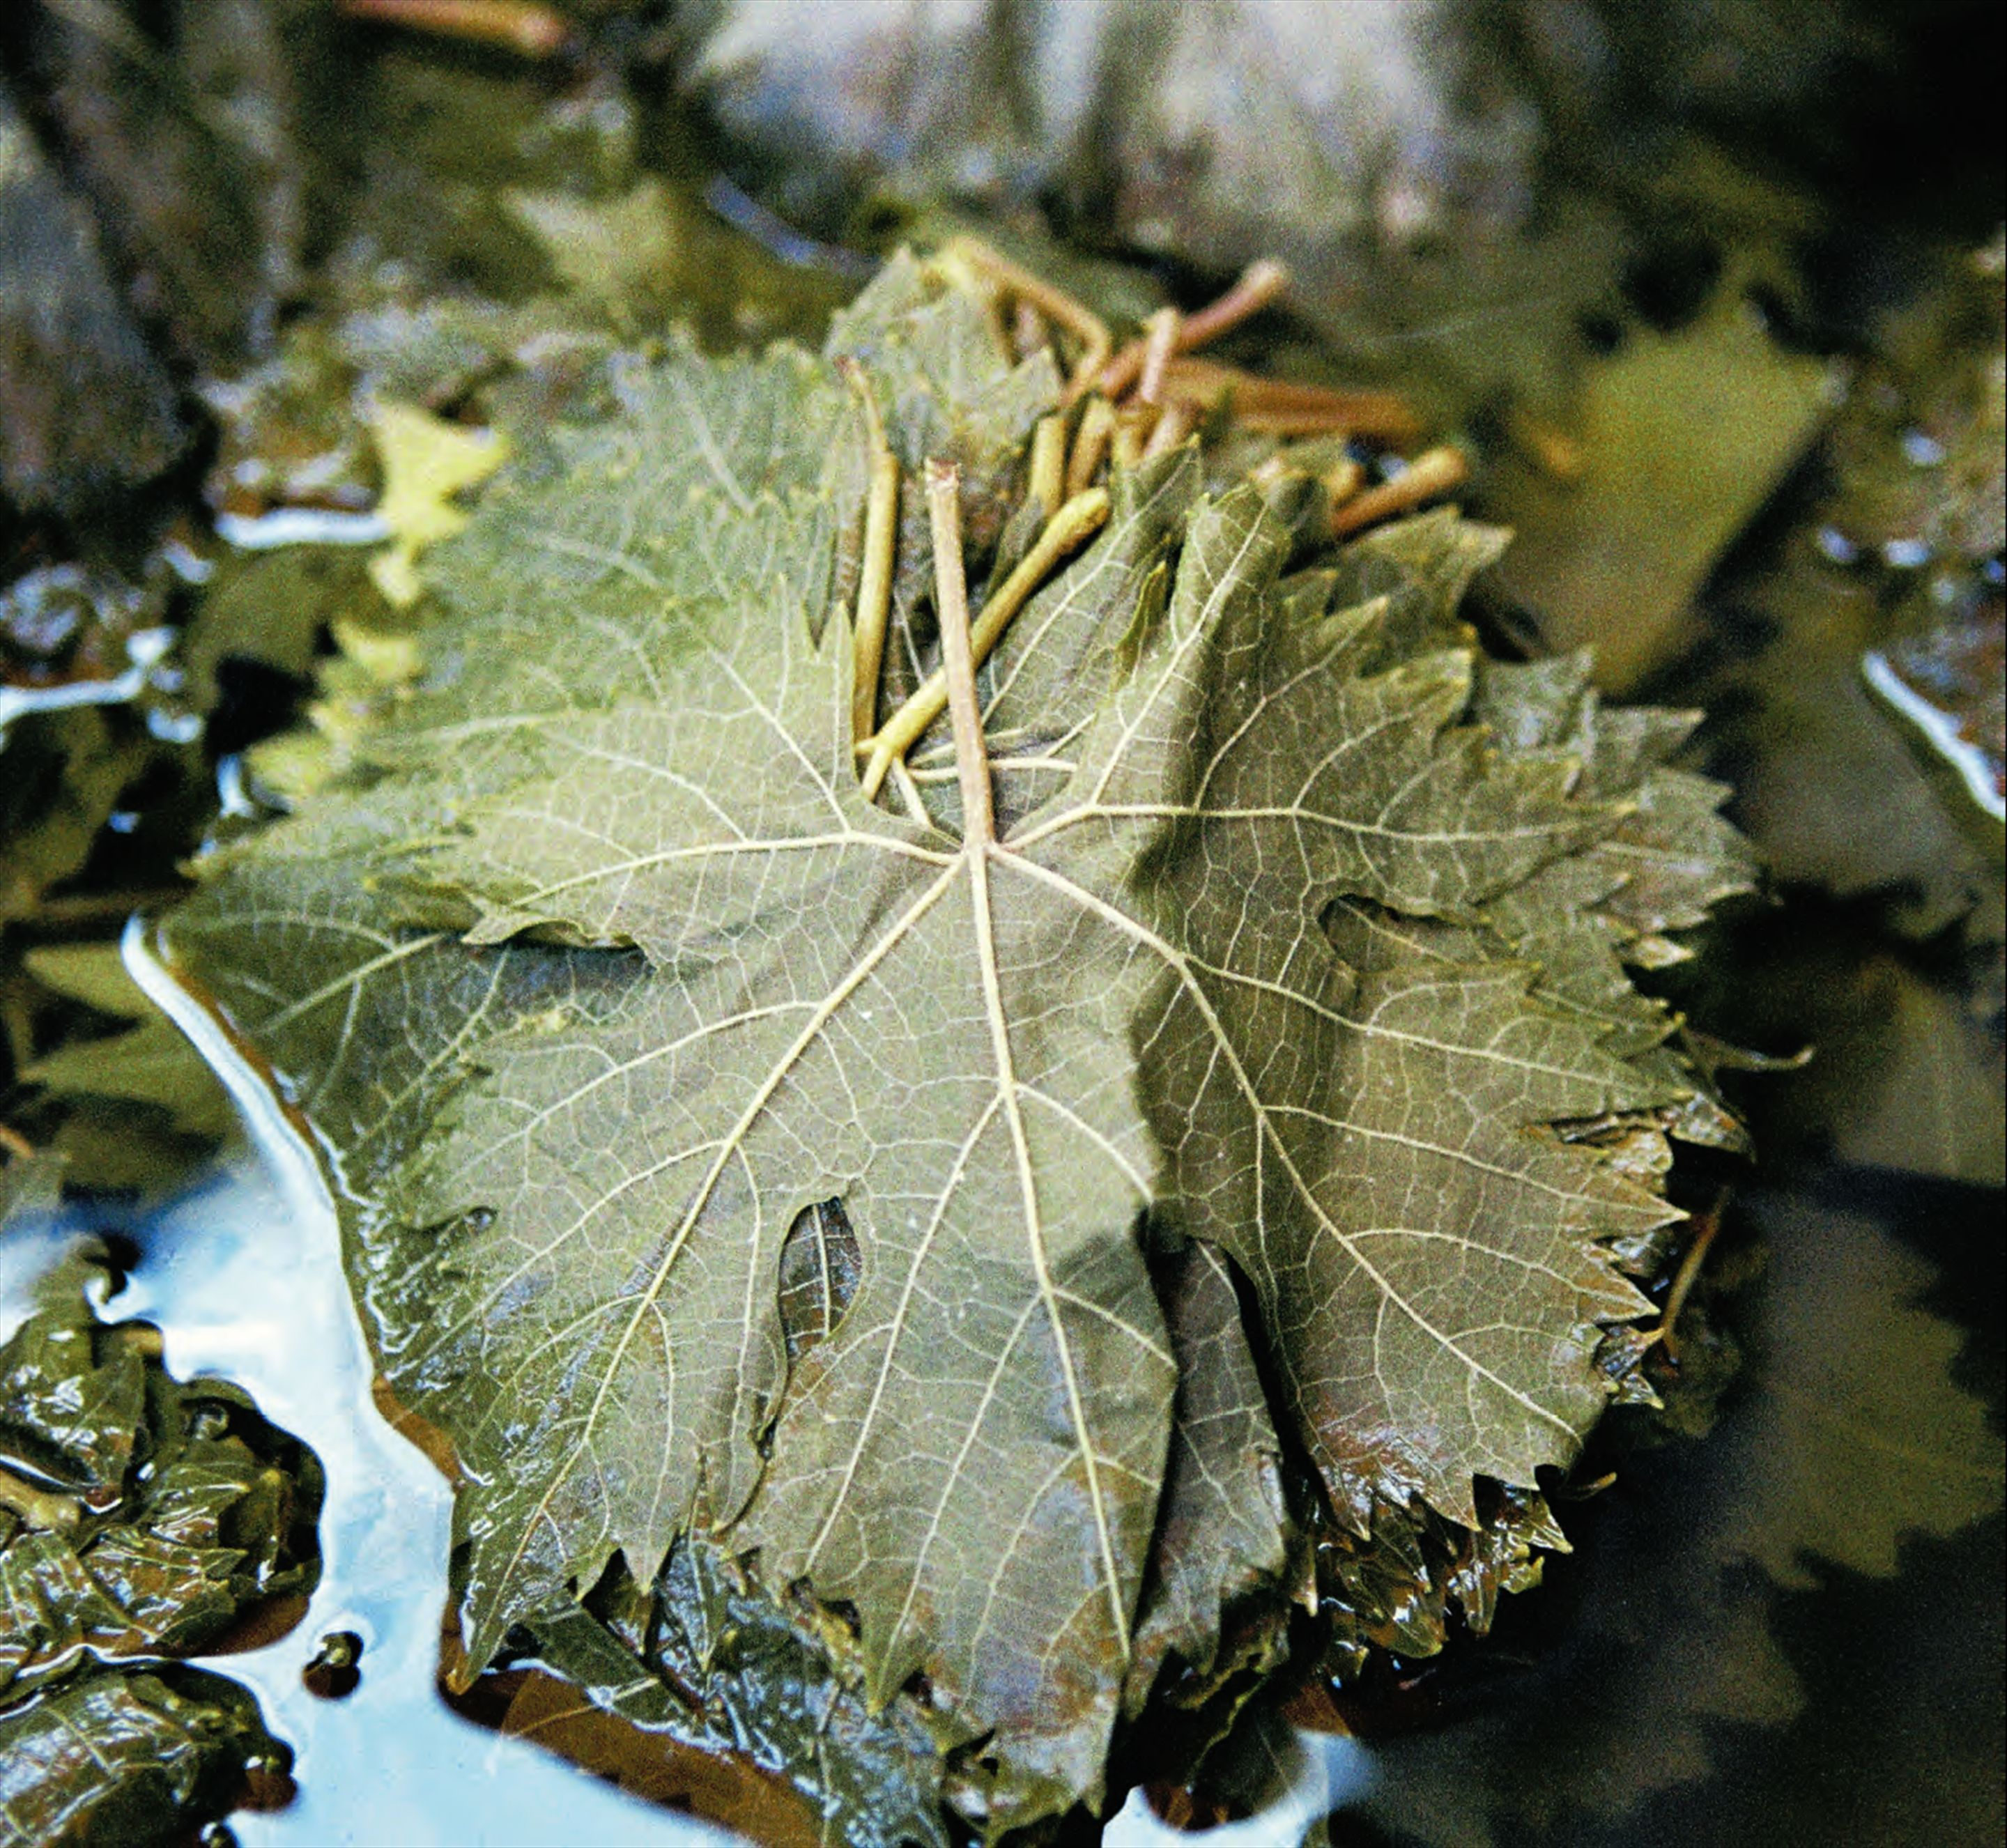 Mushroom-stuffed vine leaves with herbs